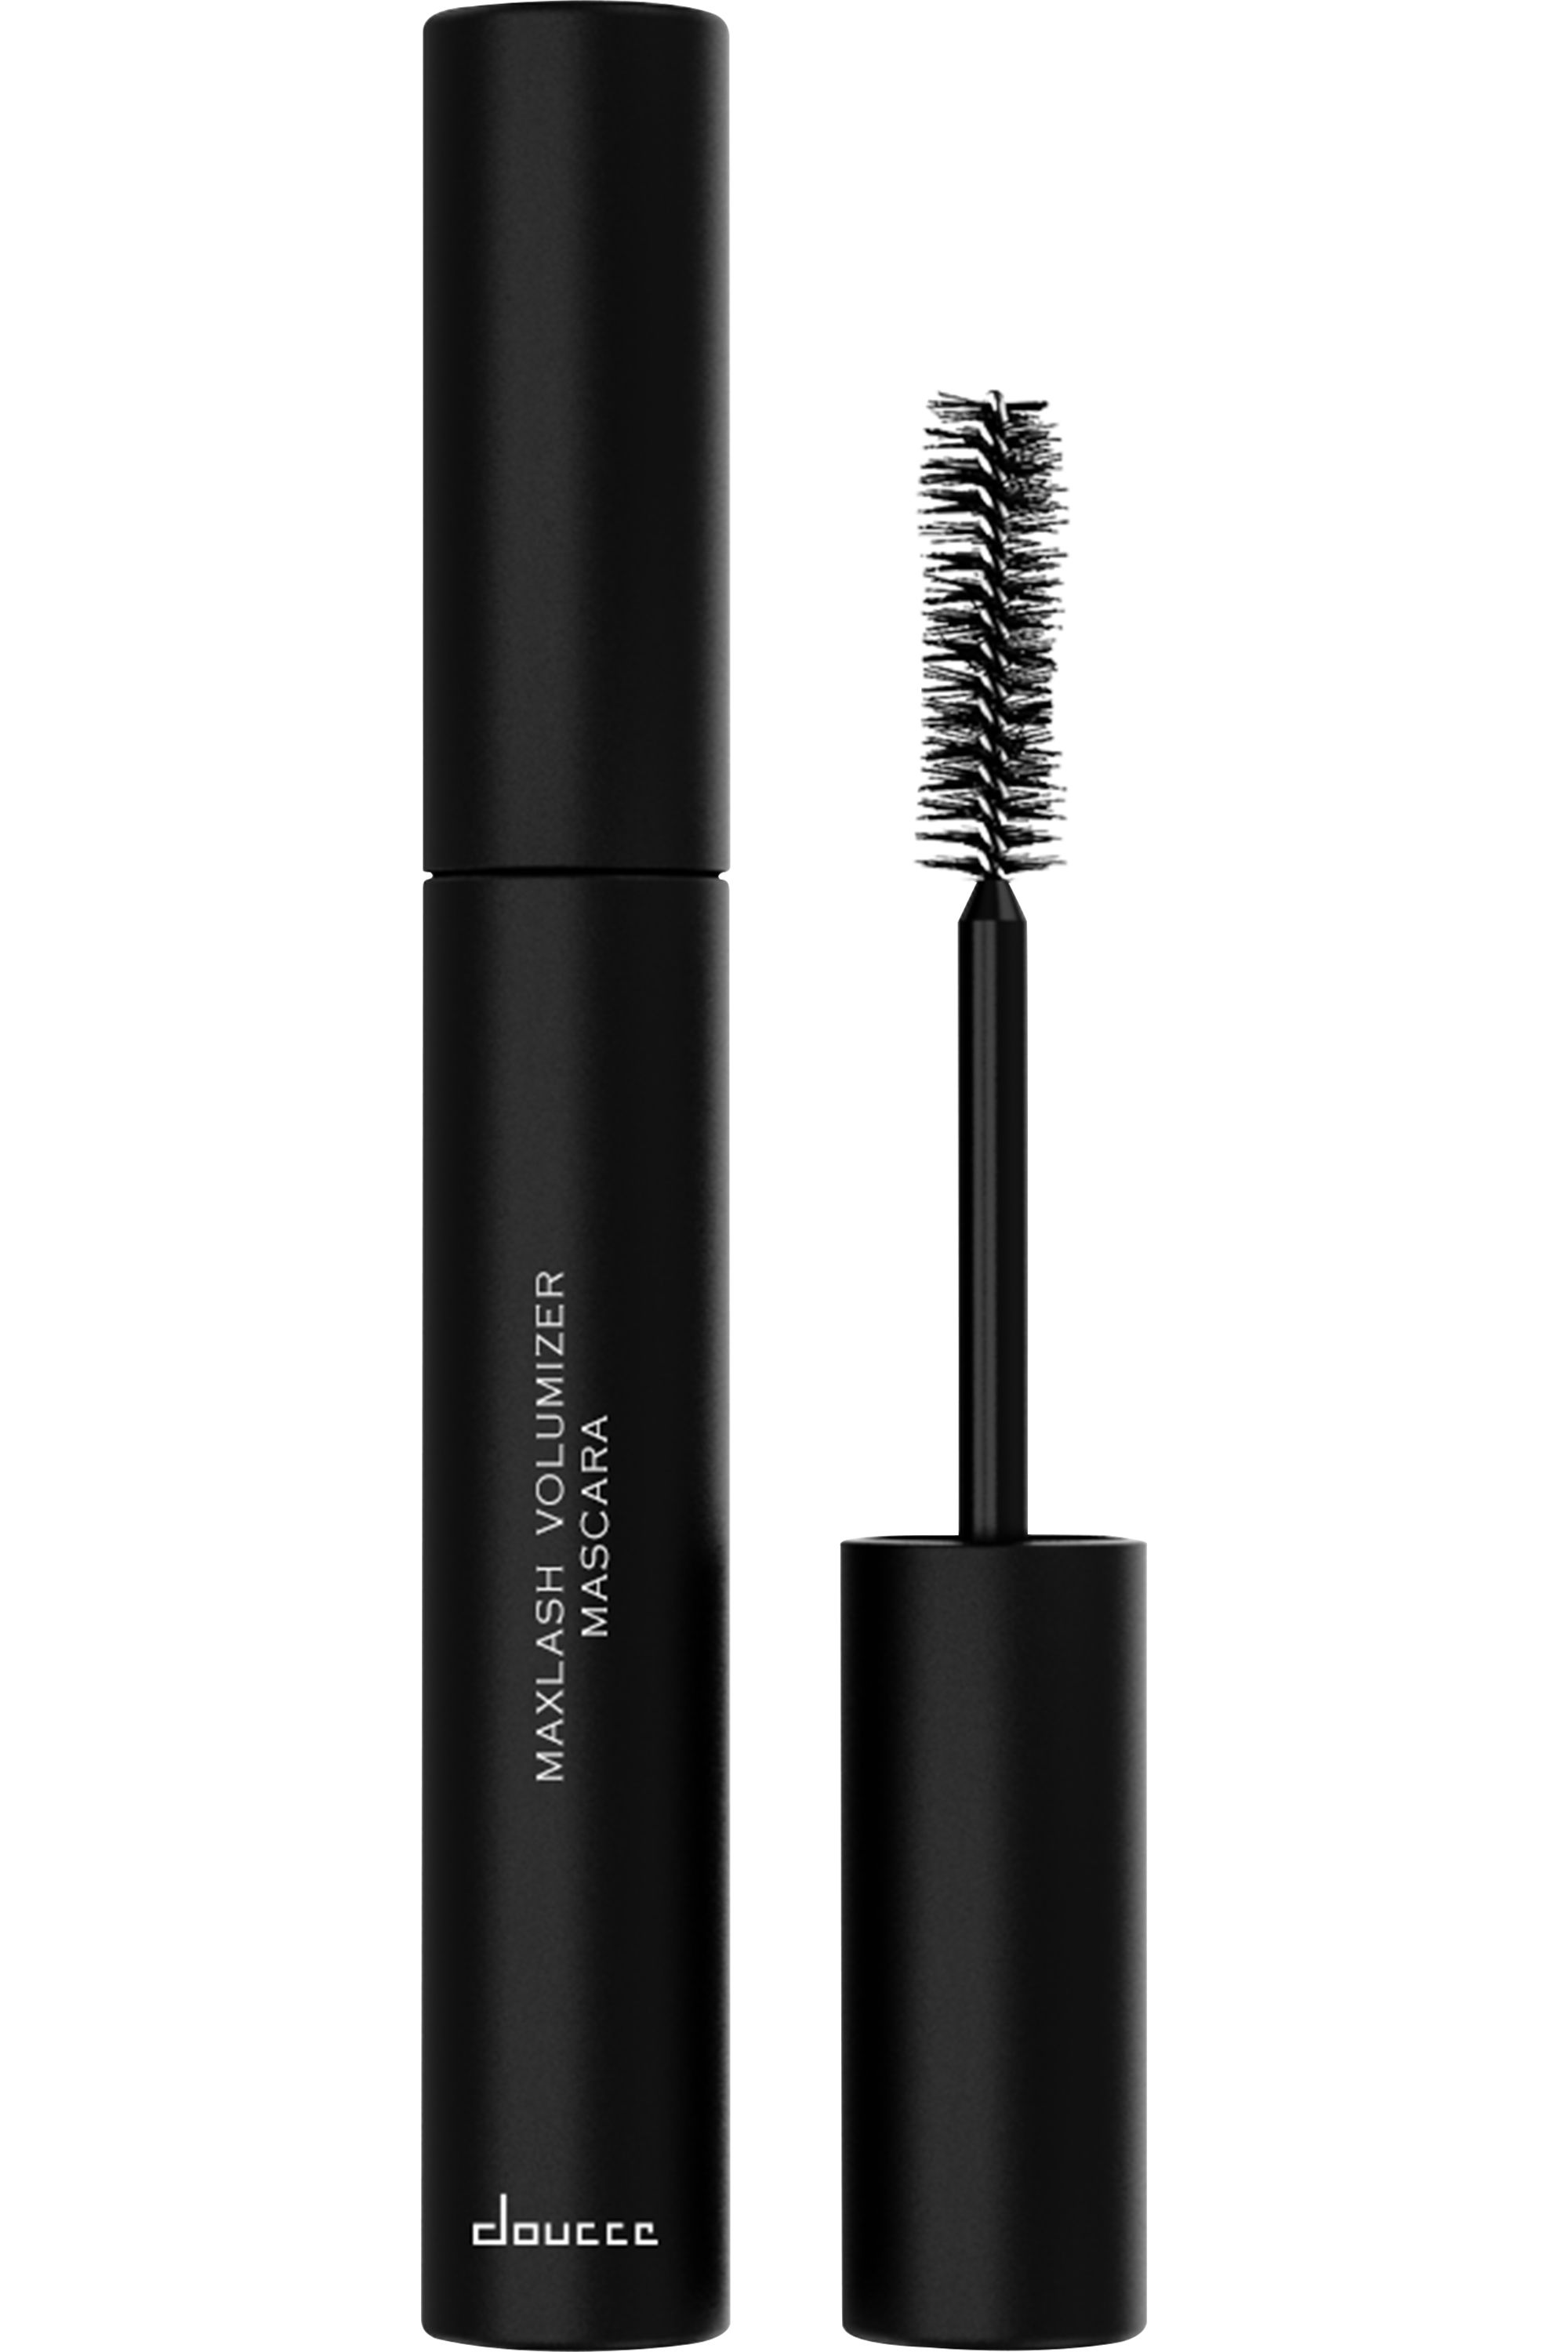 Blissim : Doucce - Maxlash Volumizer Mascara - Maxlash Volumizer Mascara